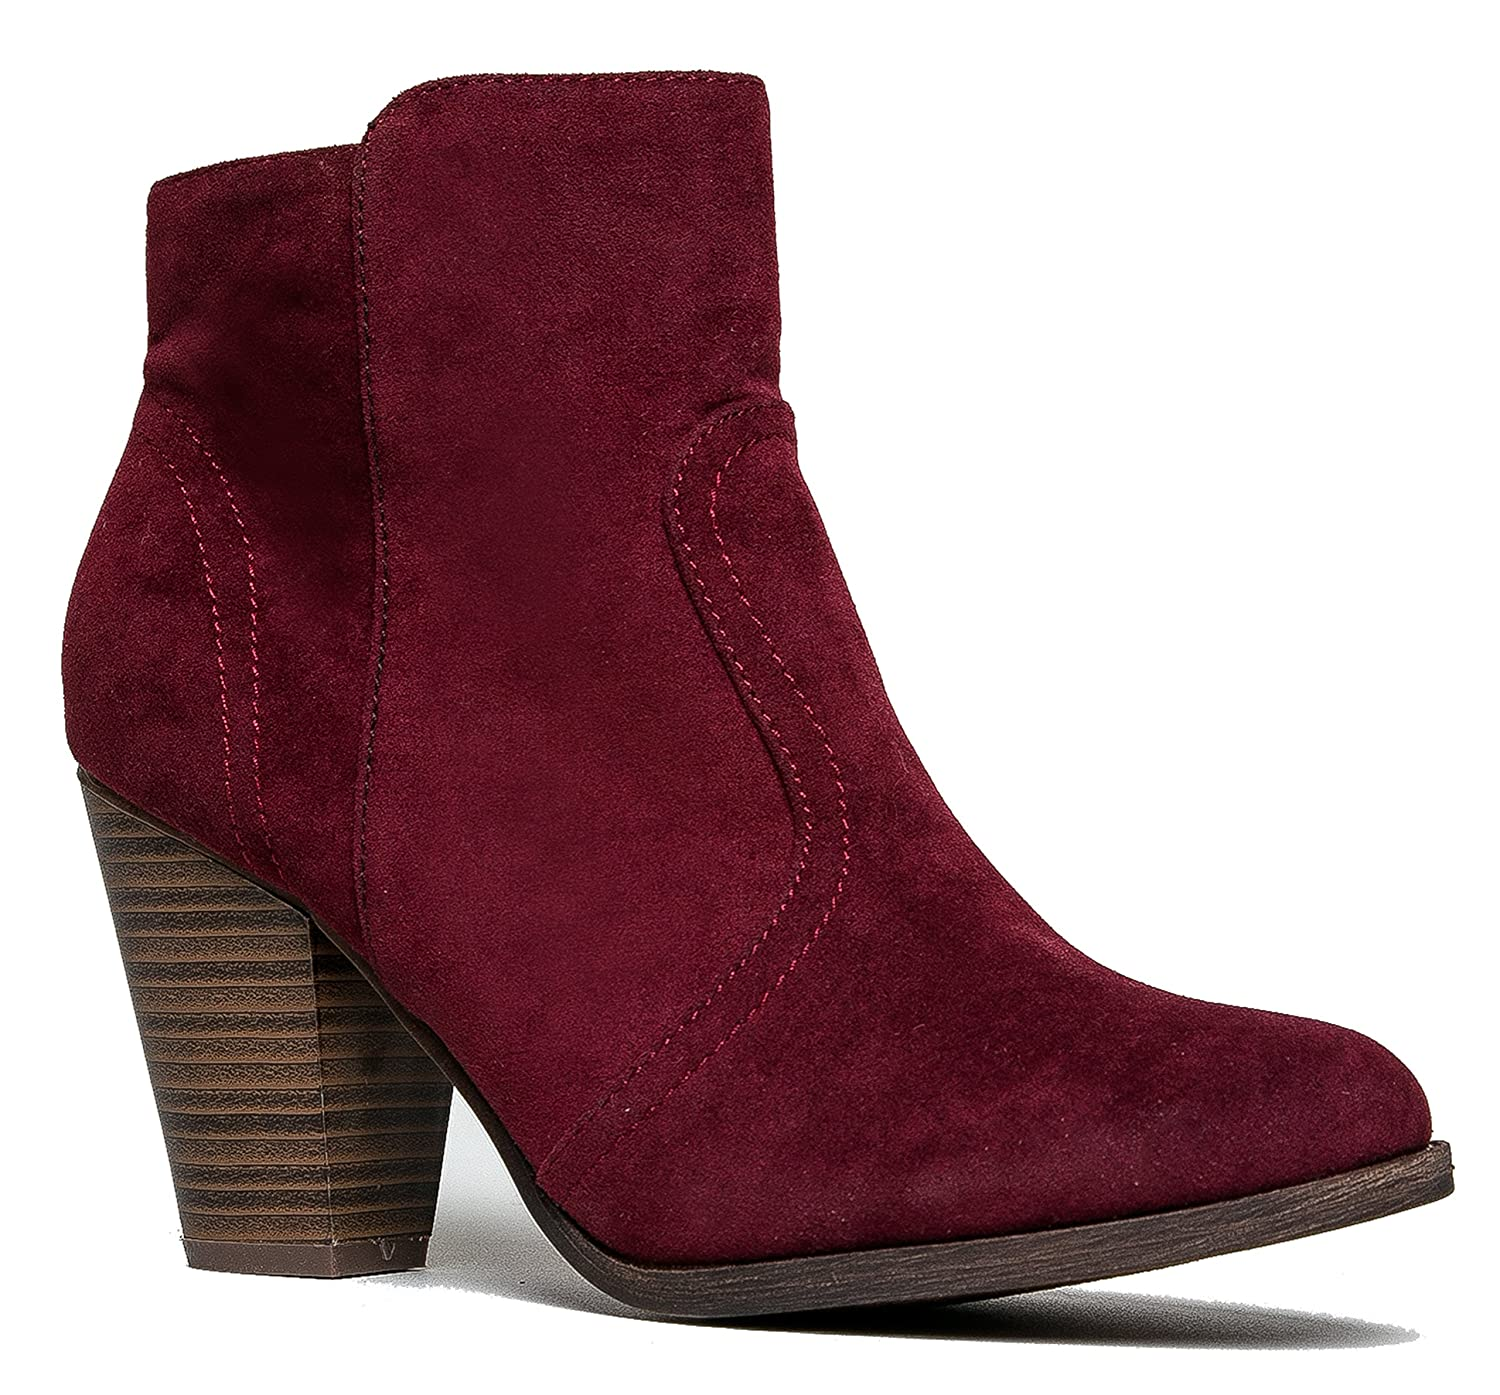 e23e2e2f8f434 Breckelles Women s HEATHER-34 Faux Suede Chunky Heel Ankle Booties Wine  Suede 6.5 B(M) US: Amazon.in: Shoes & Handbags